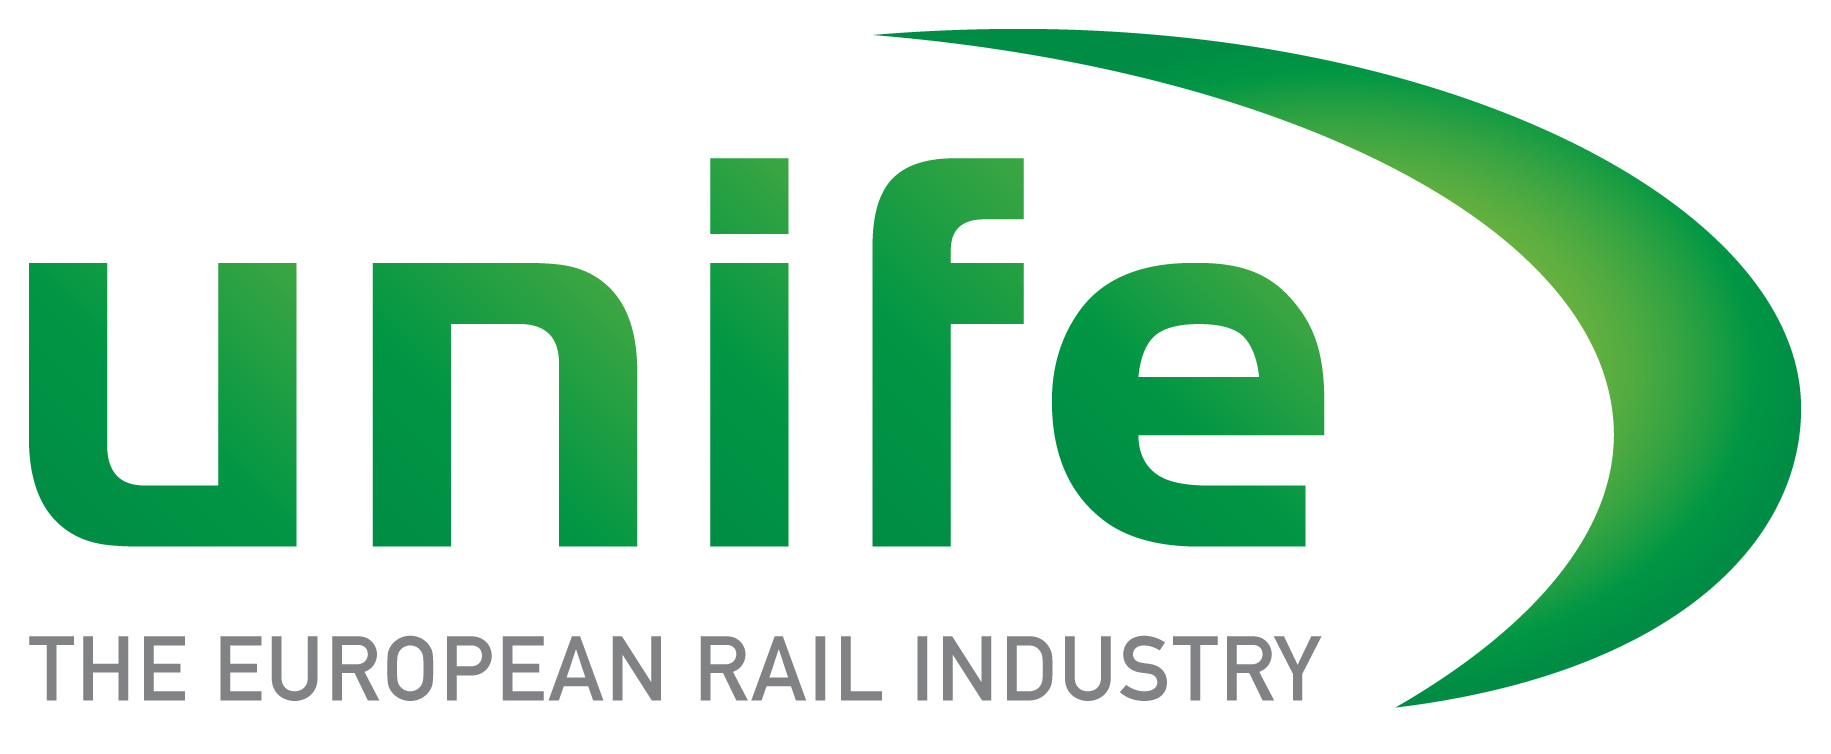 Association of the European Rail Industry (UNIFE)